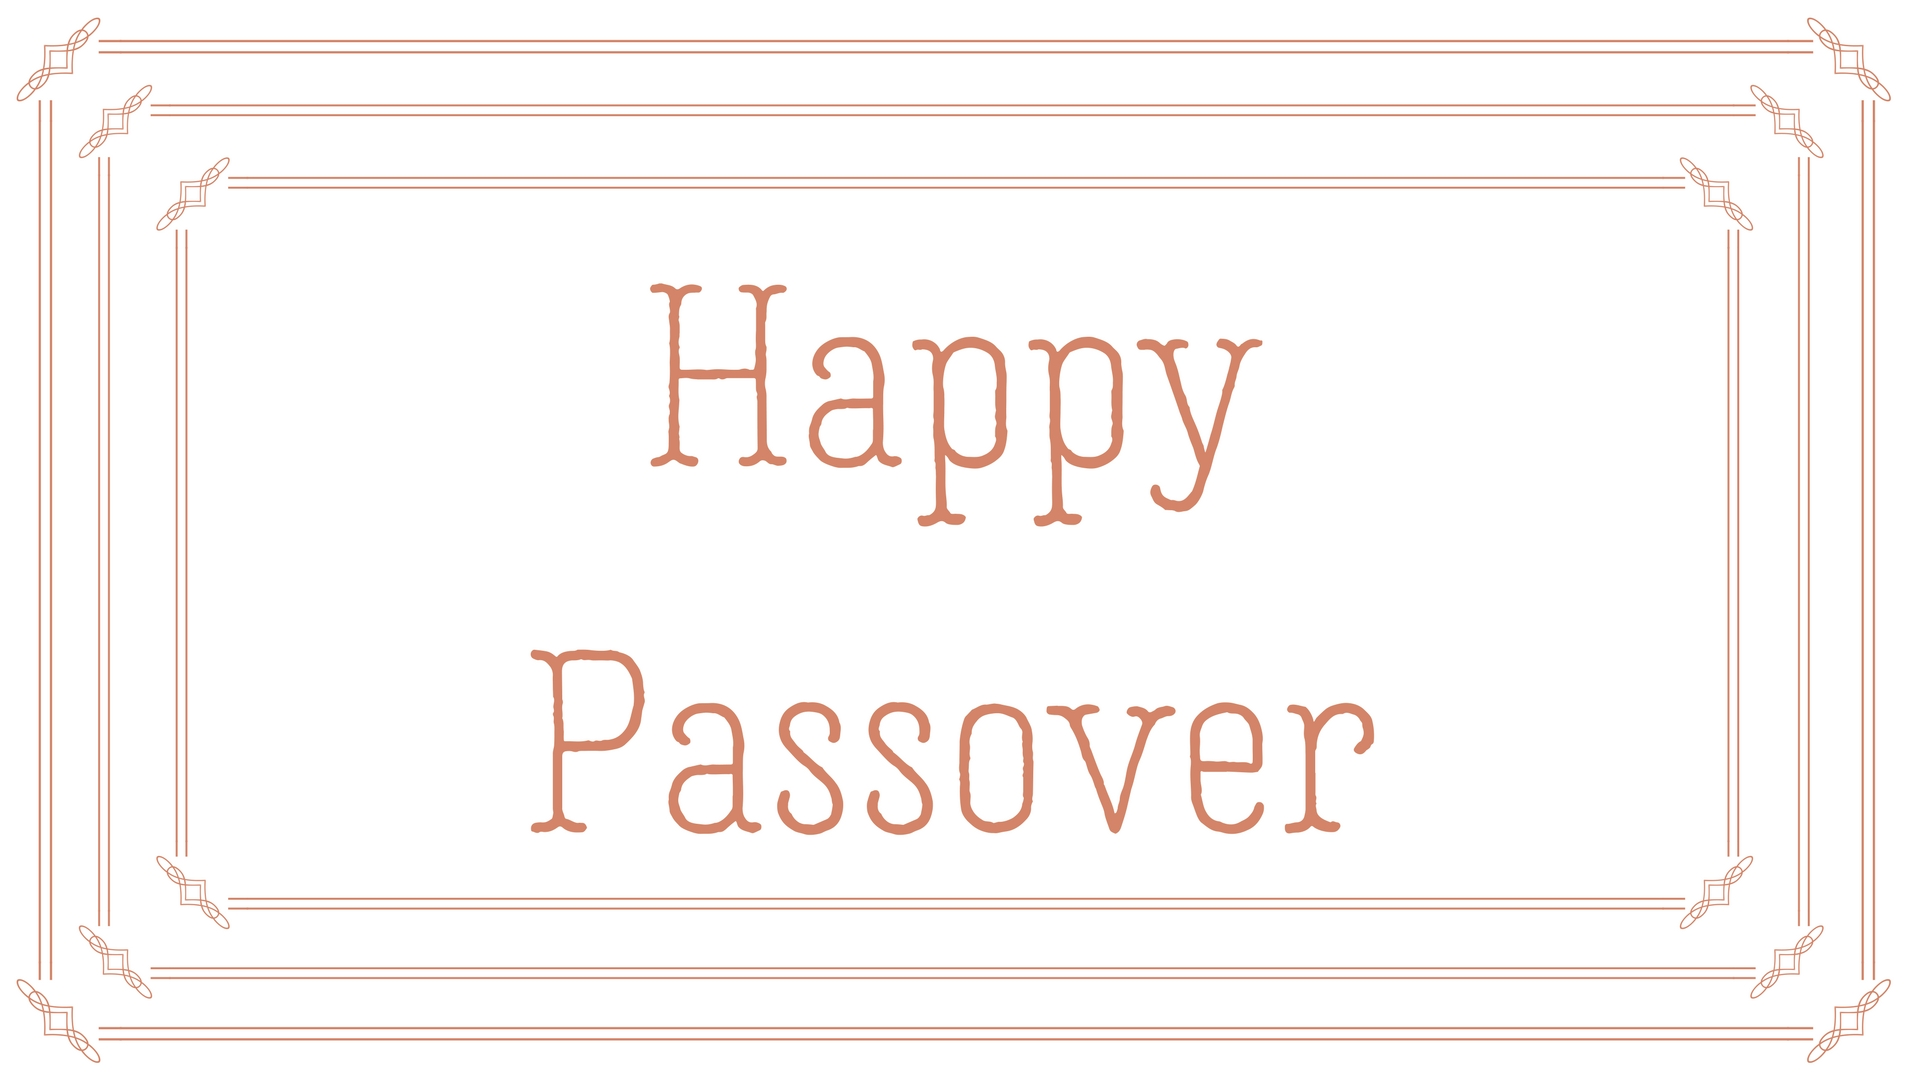 Happy Passover Rectangle Frame Greeting Card Postcard 23